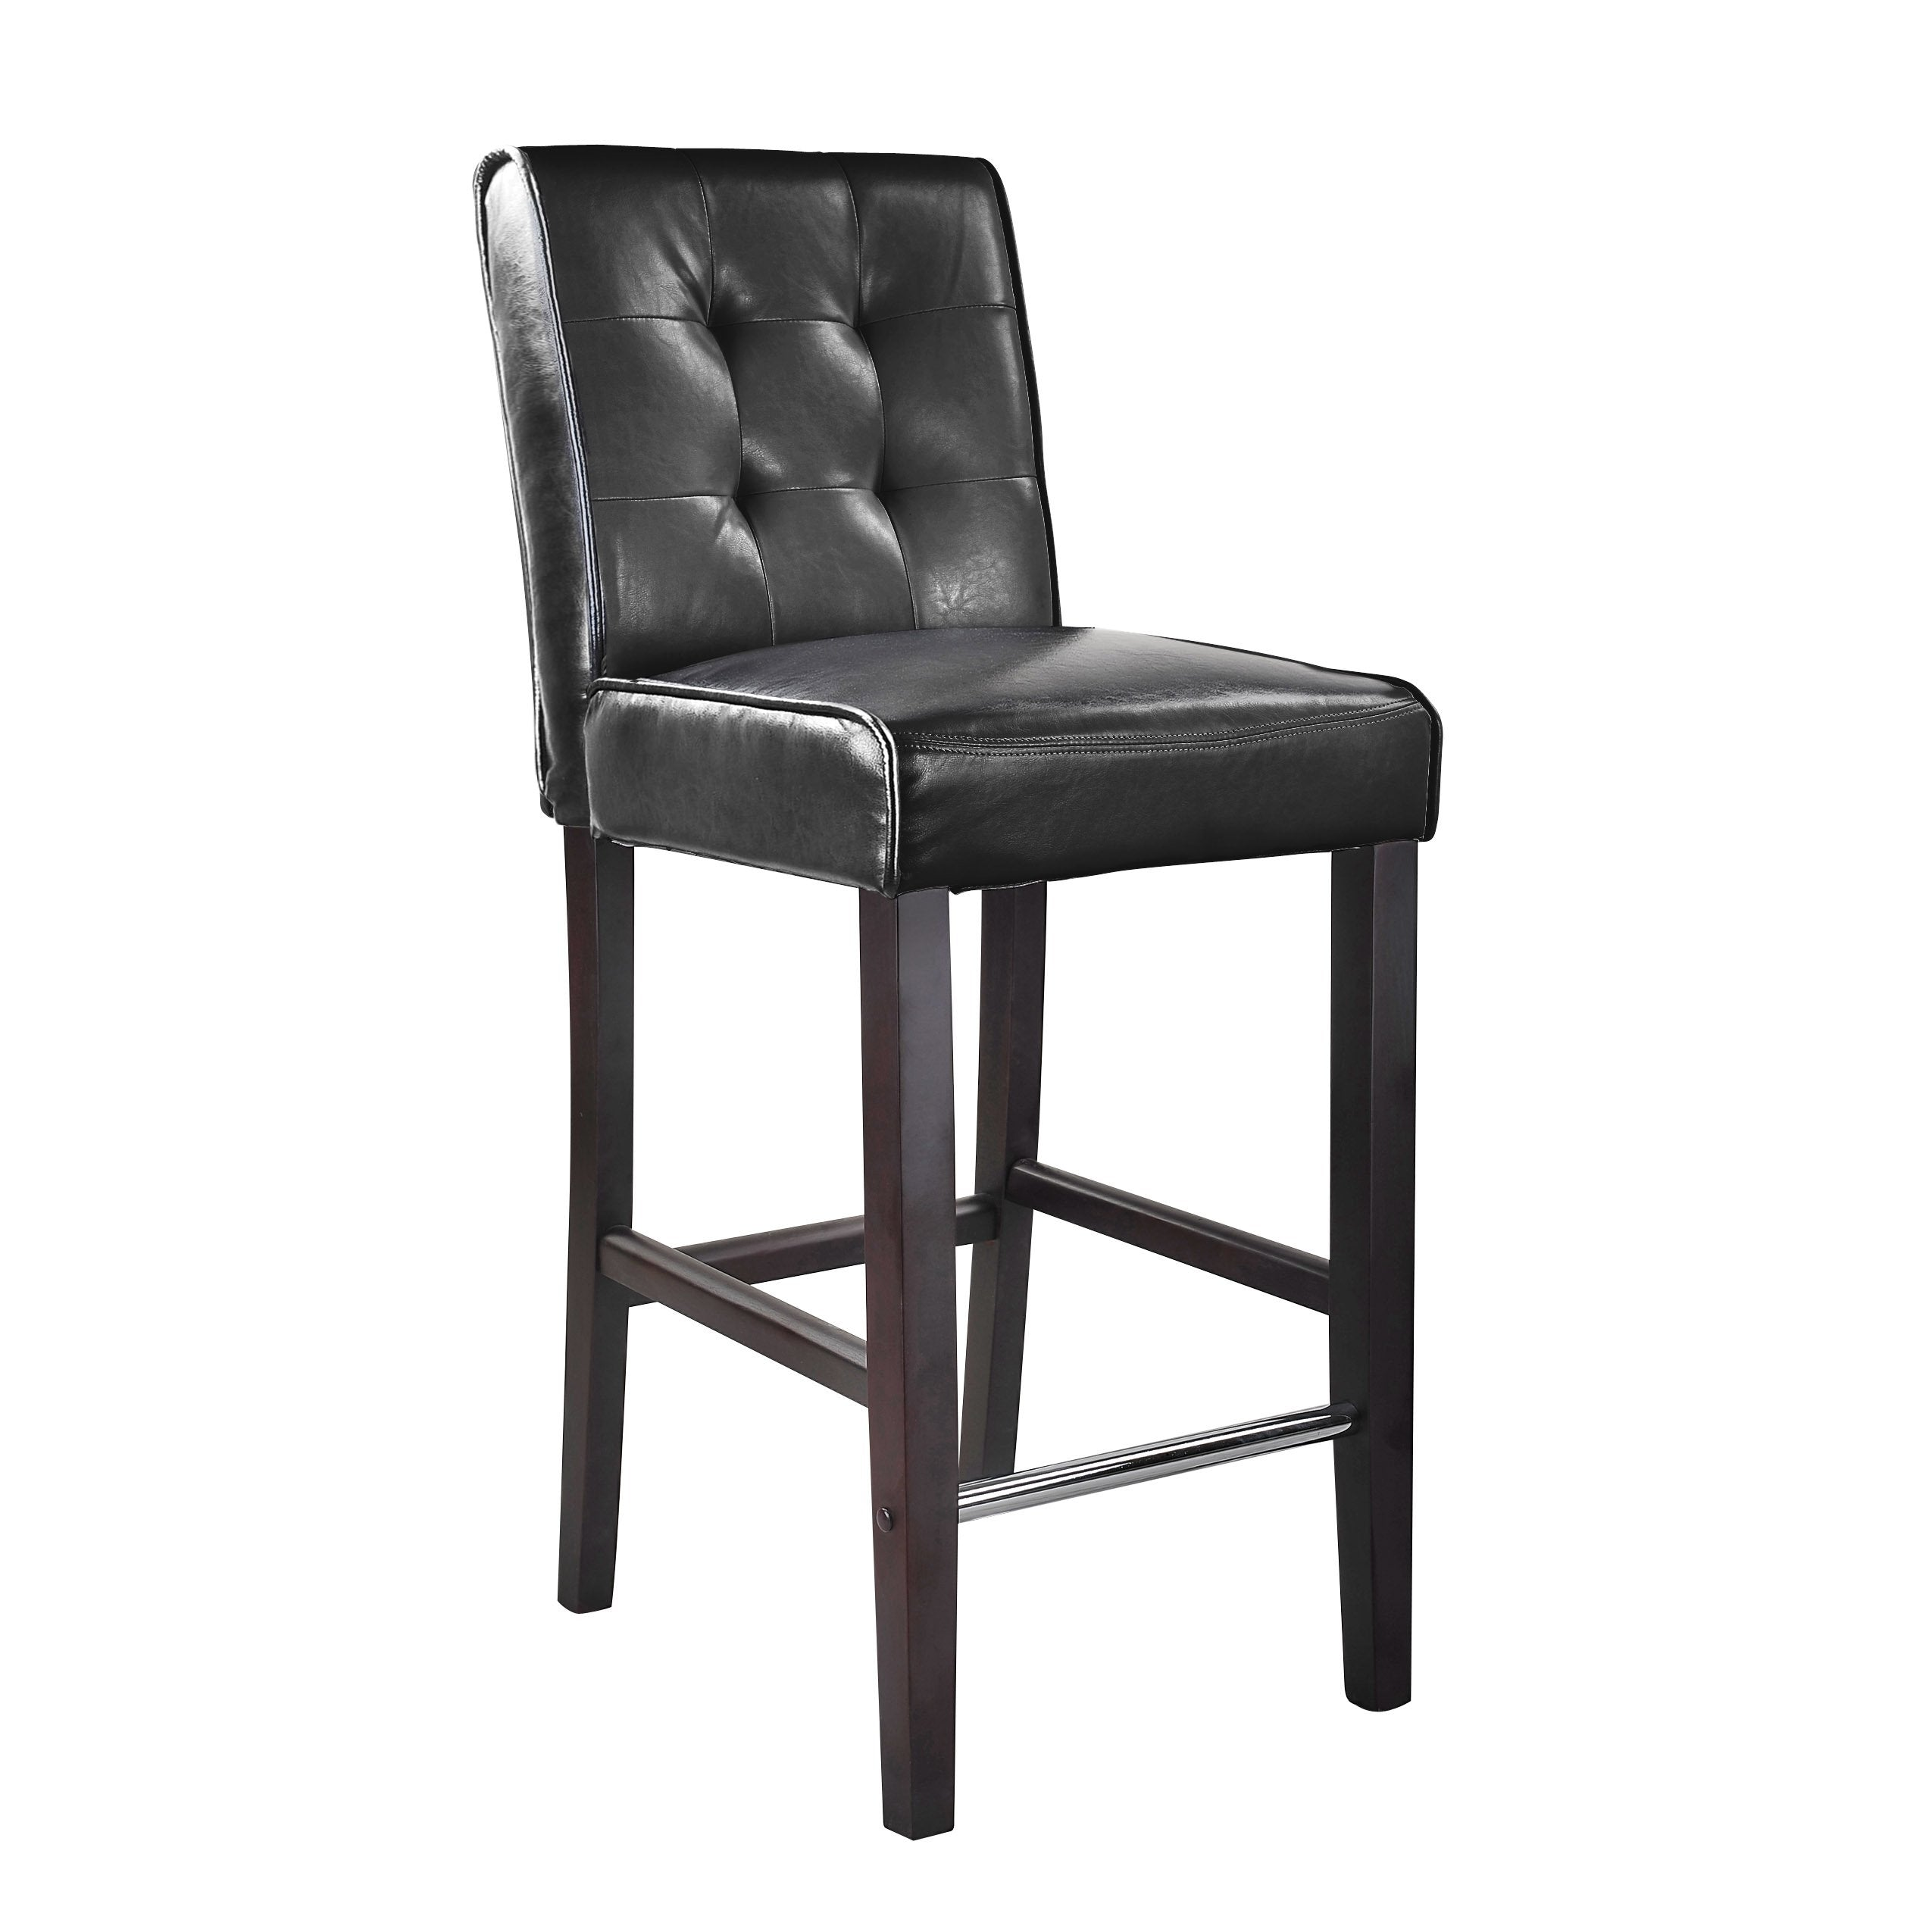 Incredible Leather Bar Height Bar Stool With Footrest Pdpeps Interior Chair Design Pdpepsorg